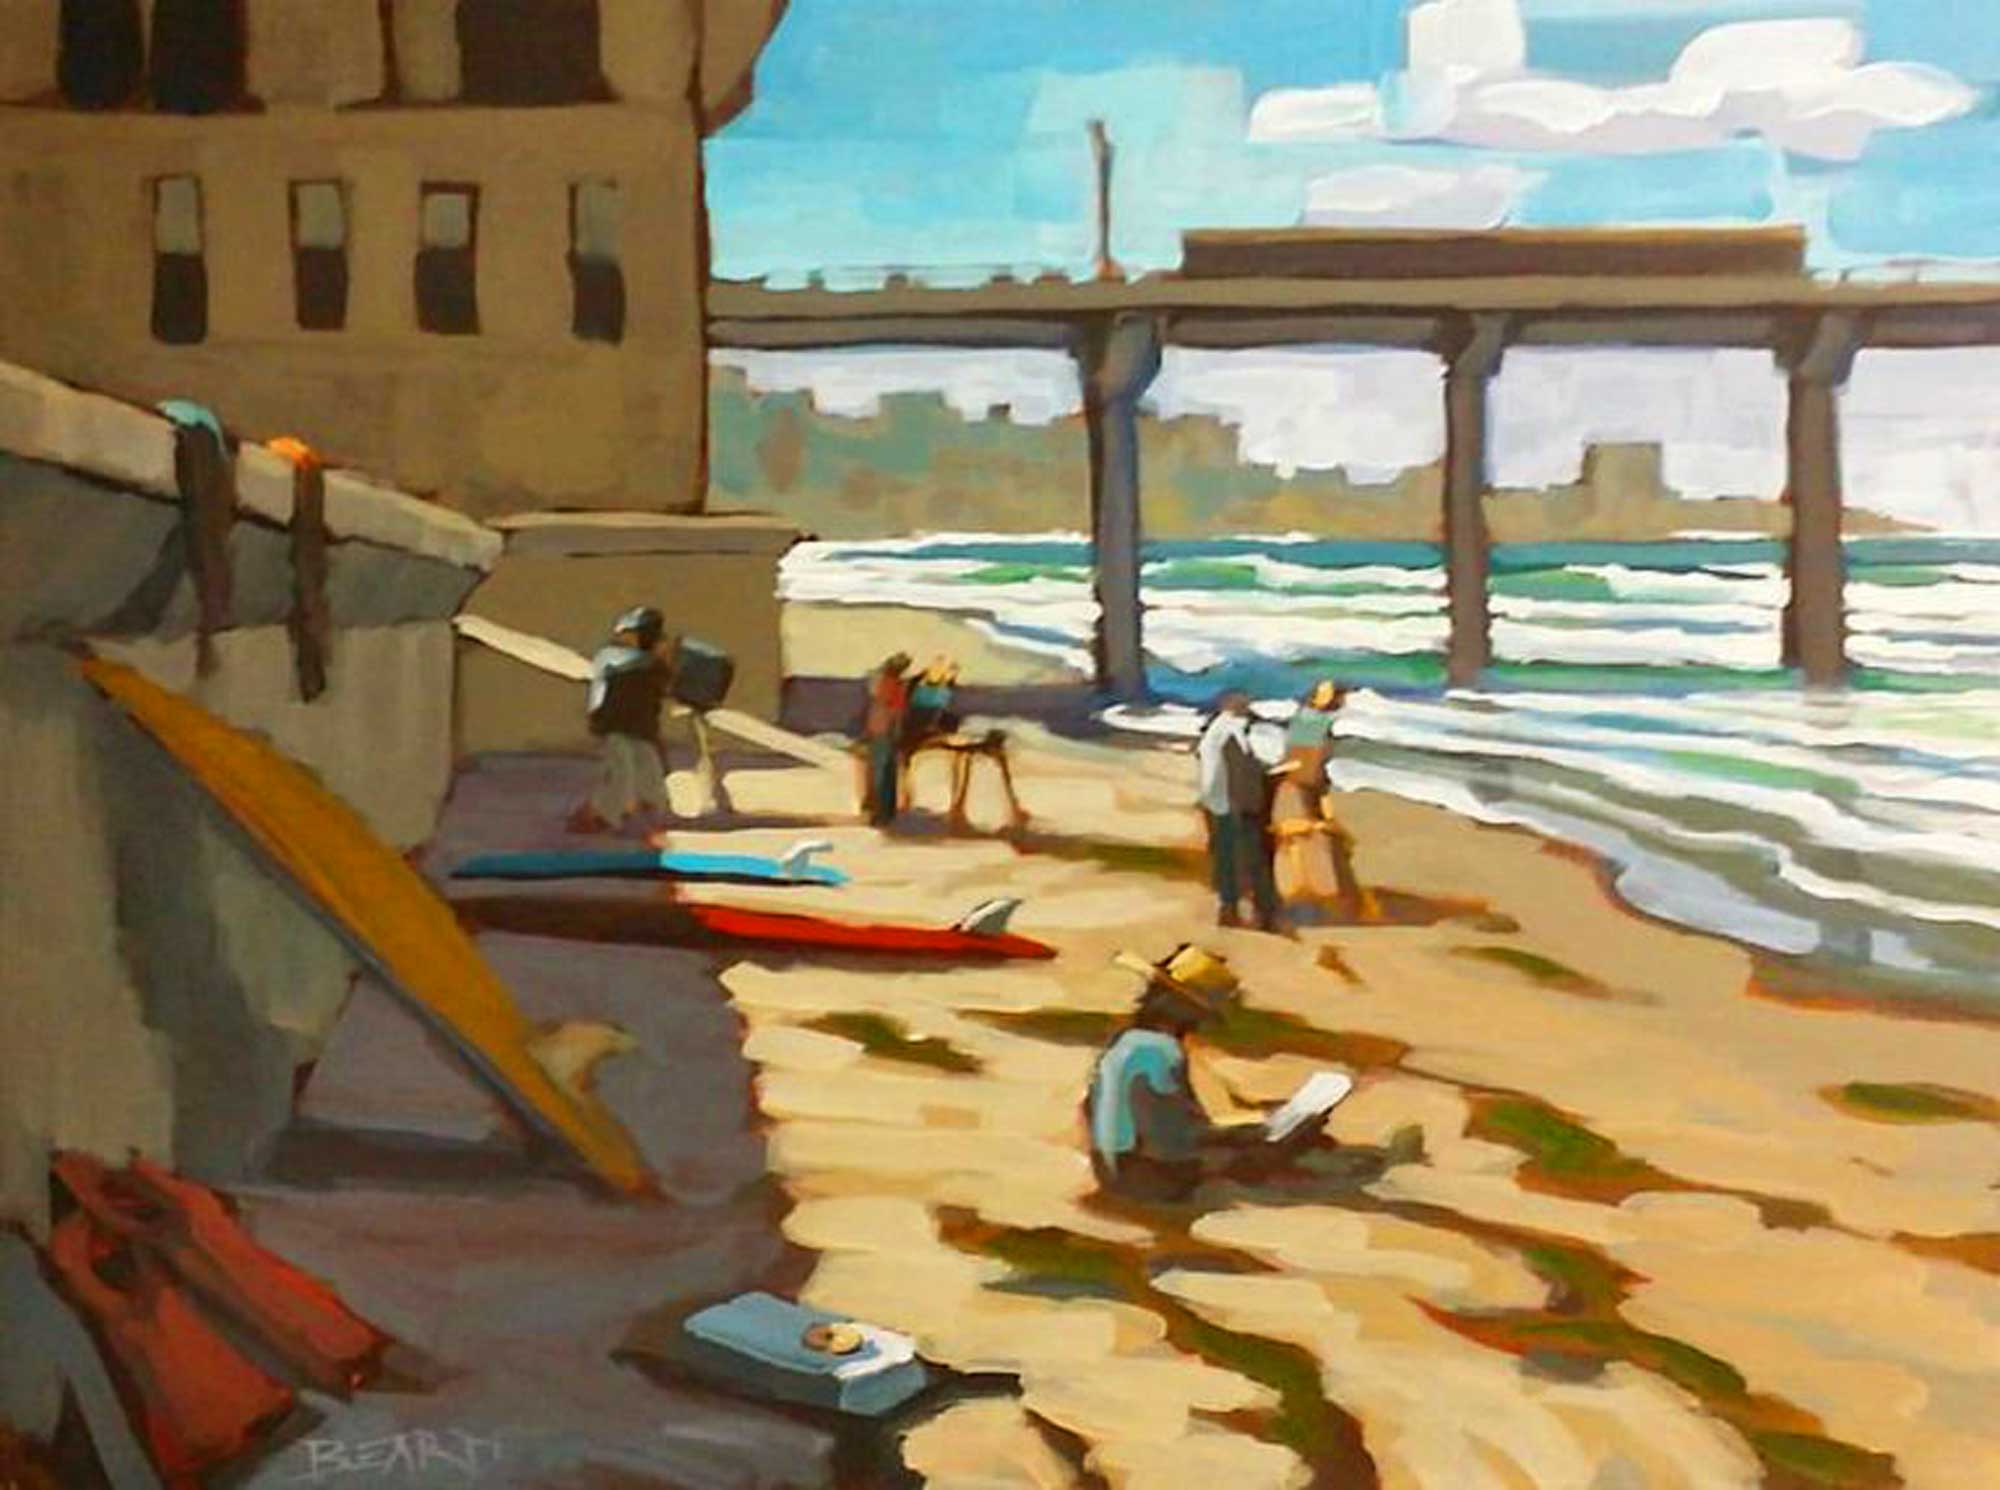 Plein air painting of artists and surfboards on the beach at Scripps pier in La Jolla on the San Diego coast of southern California.